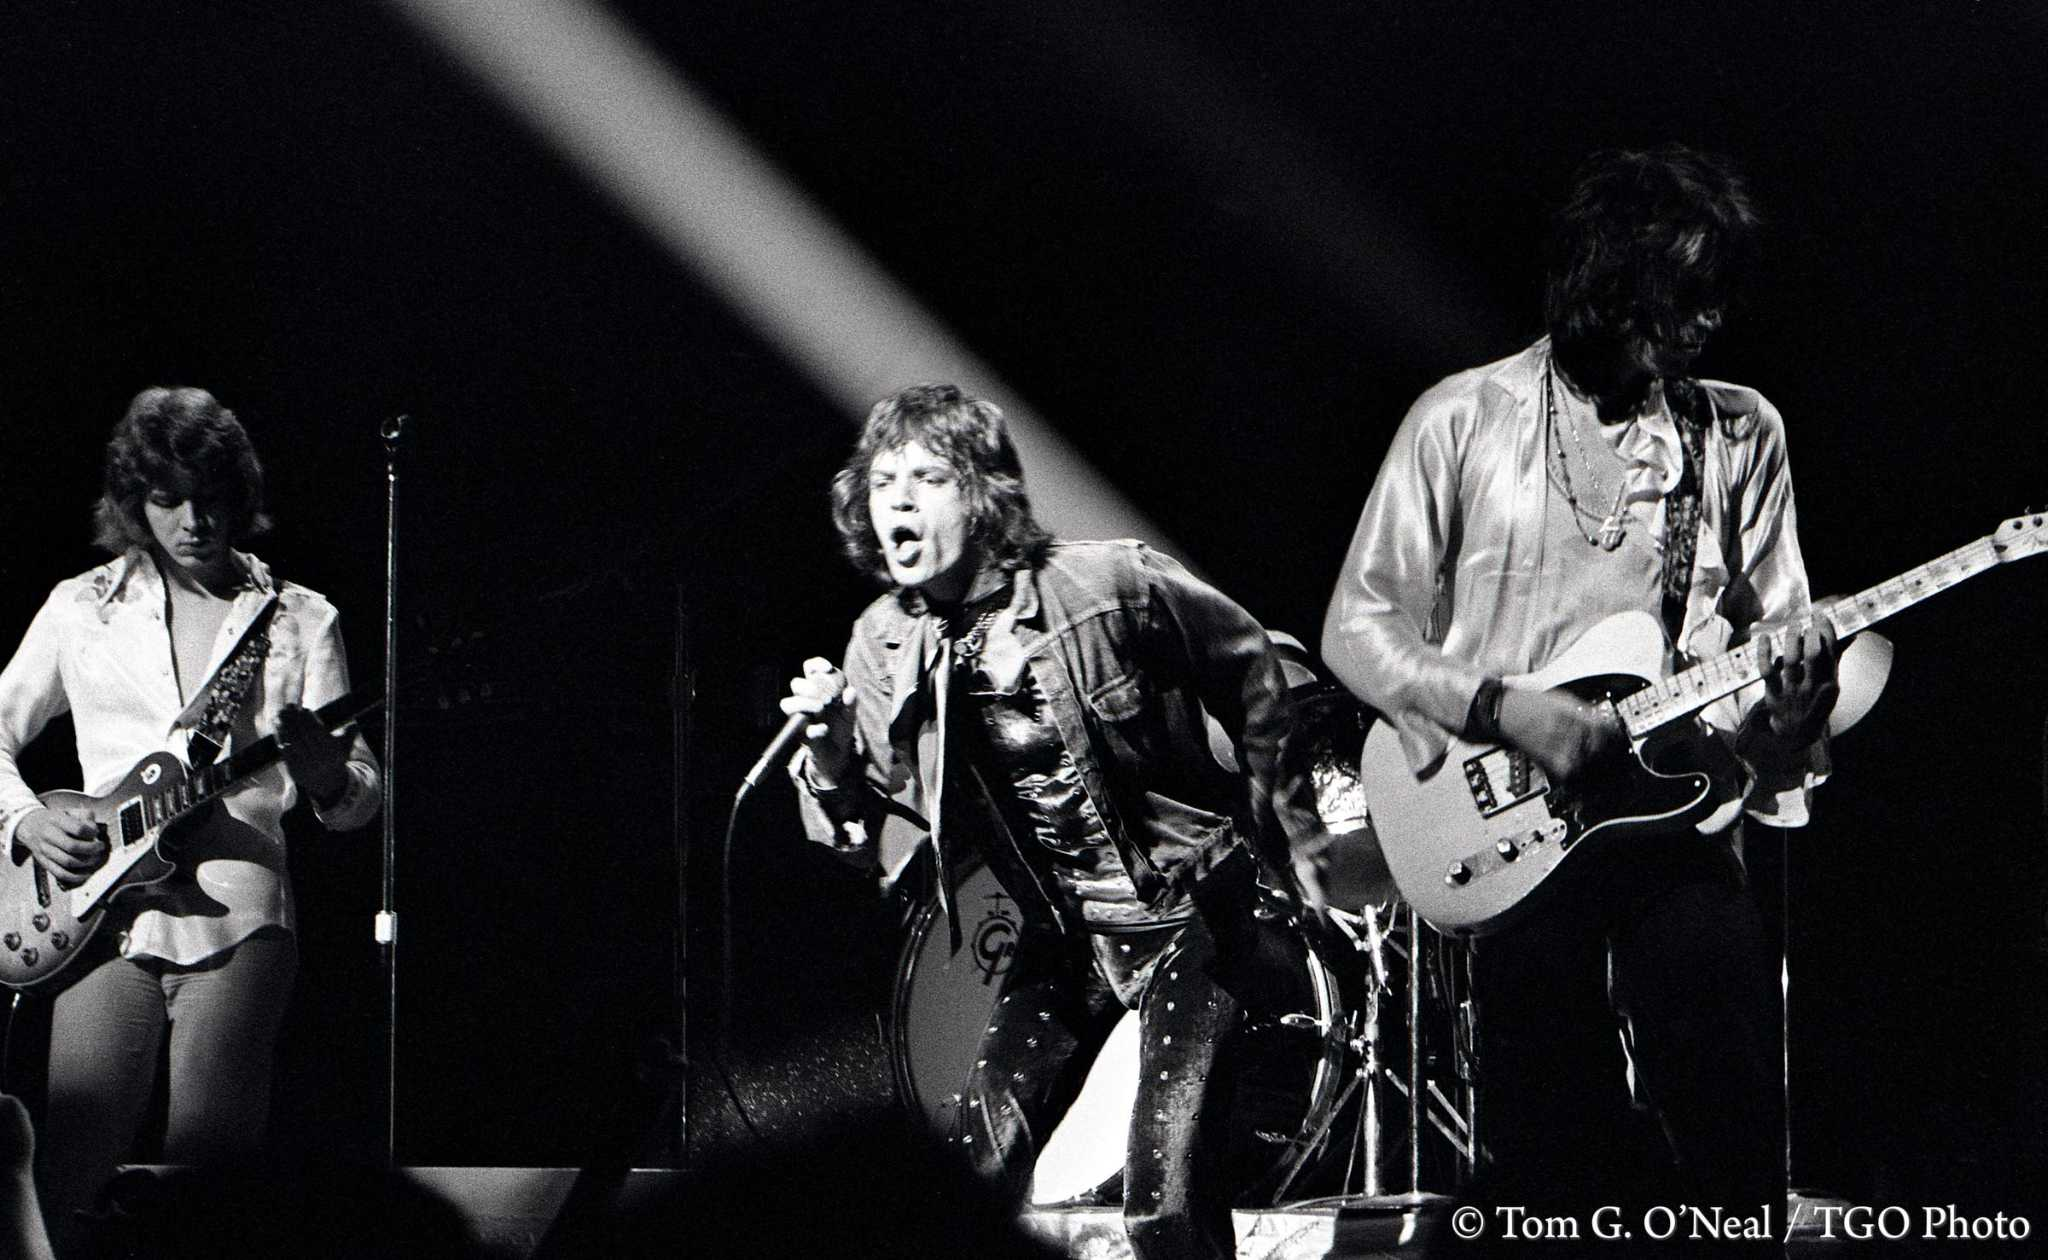 The documentary the Rolling Stones didn't want you to see still shocks